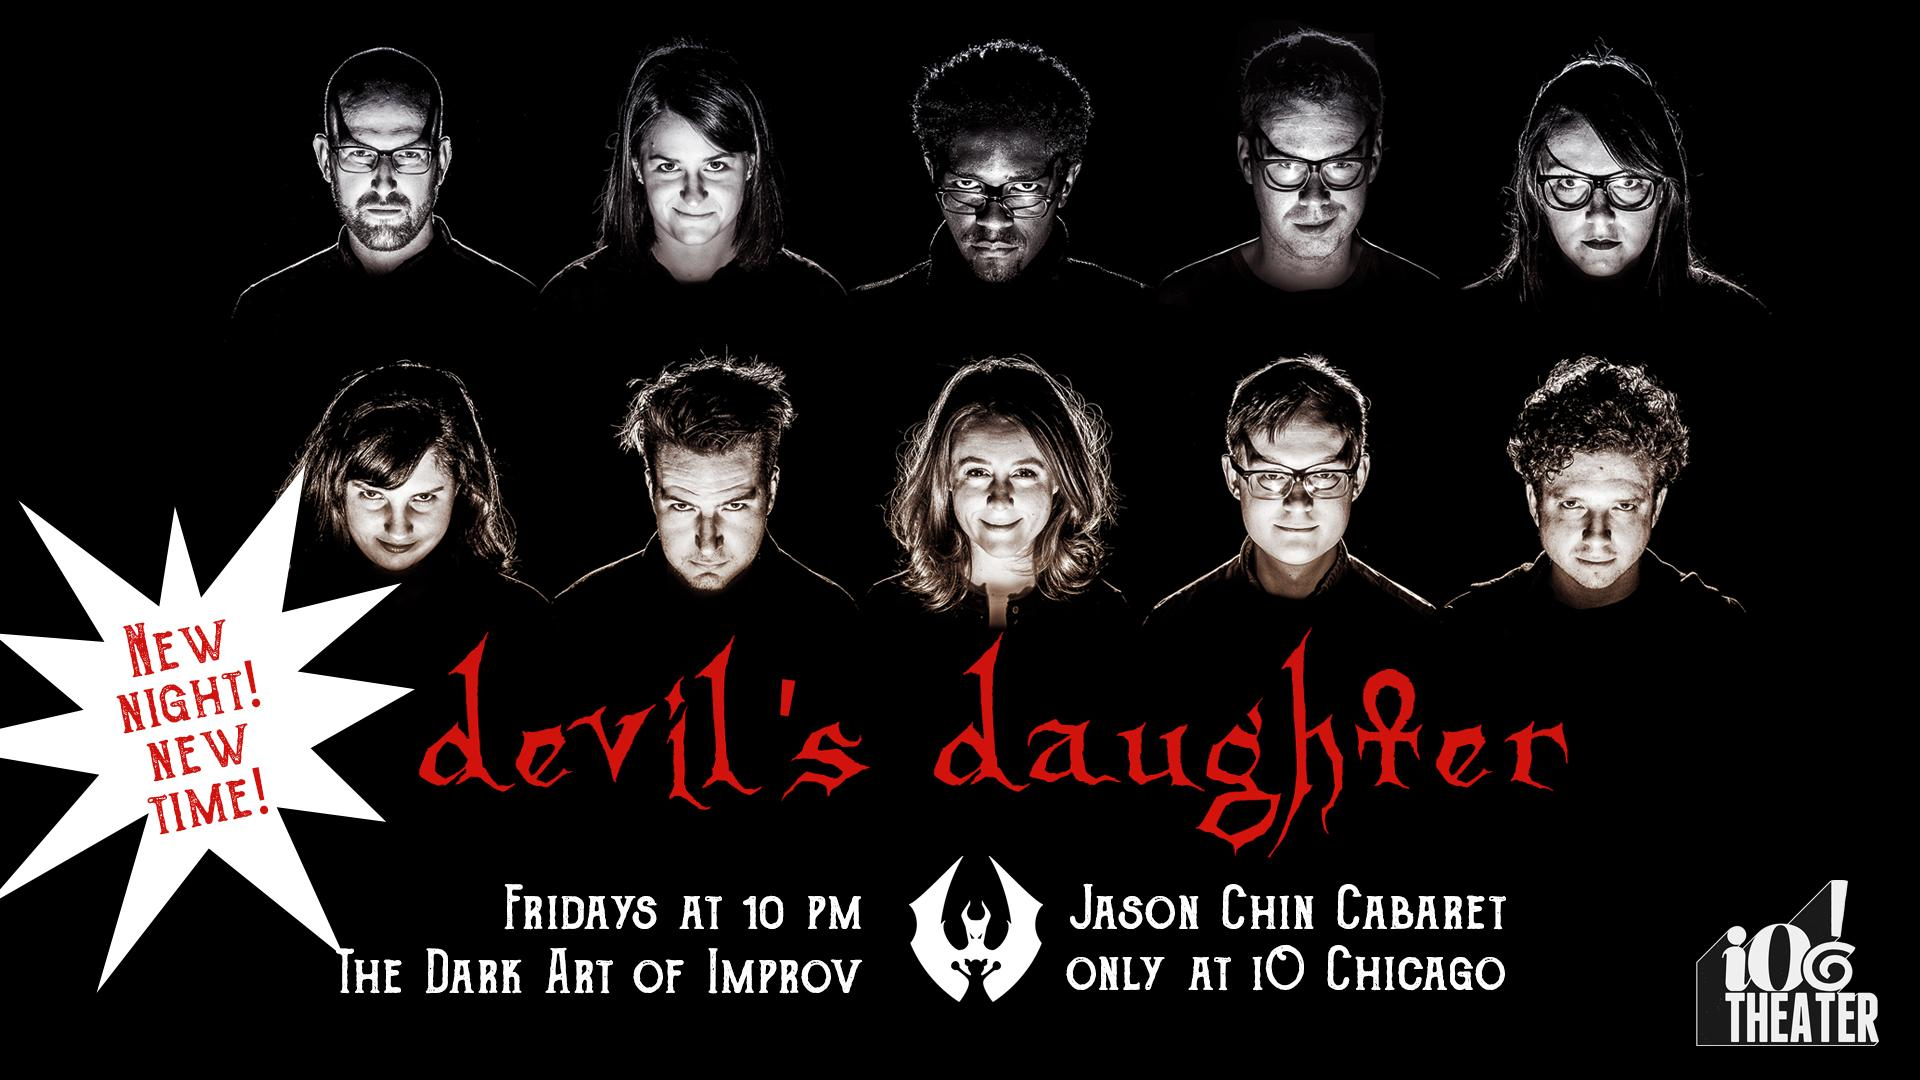 HAROLD NIGHT w/ Devil's Daughter & Mean Streak